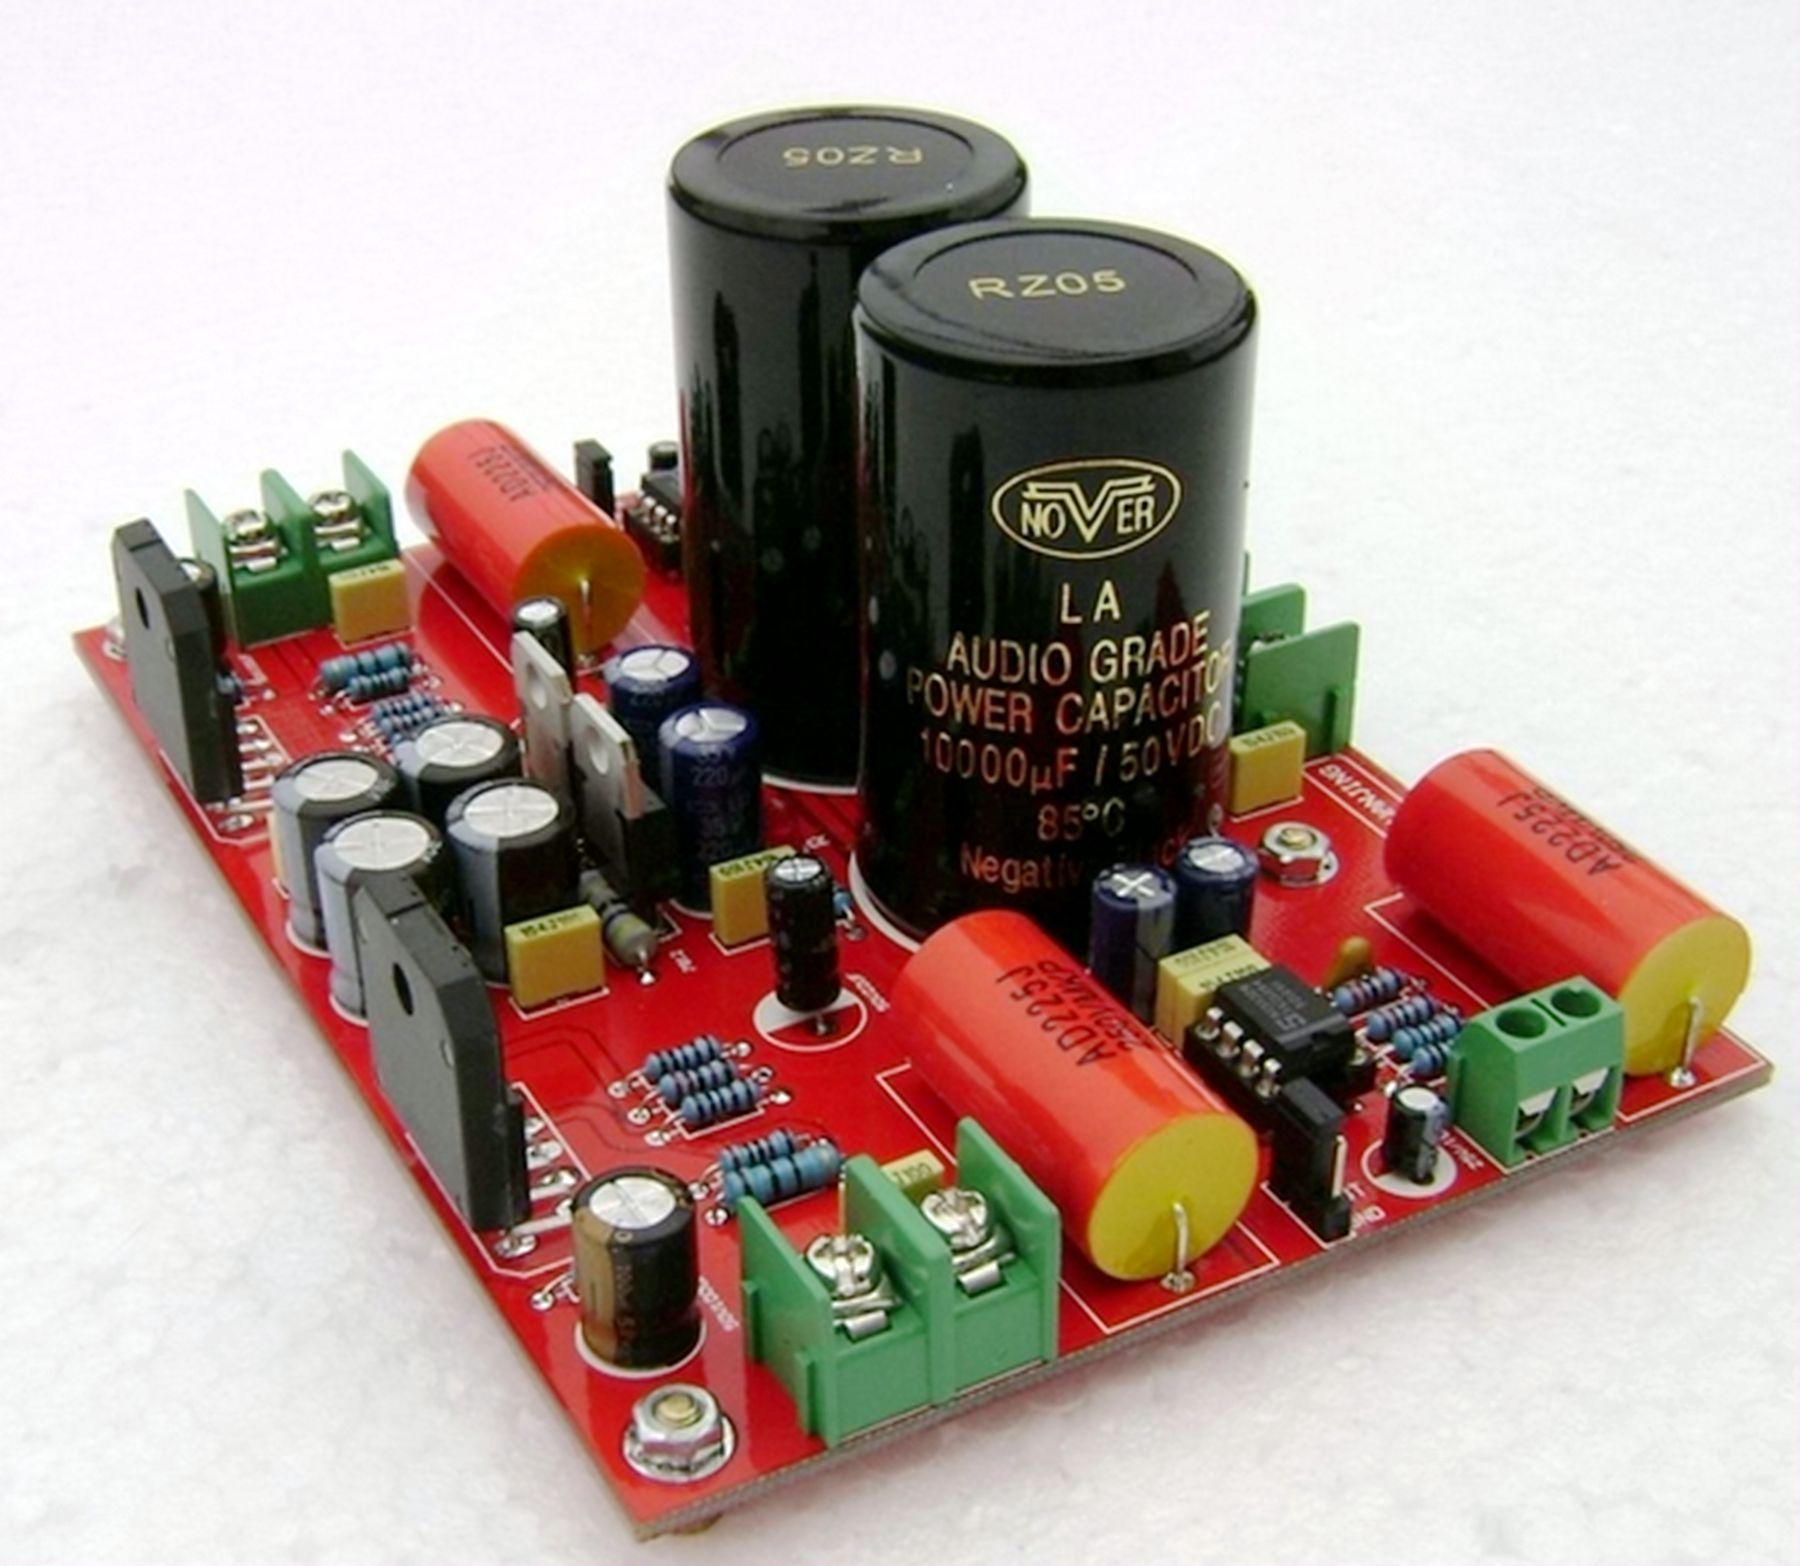 2018 Lm3886 Large S 5532 Amplifier Board Fever Edition Deluxe High Power Circuit Using Integrated From Wonderful Land 4149